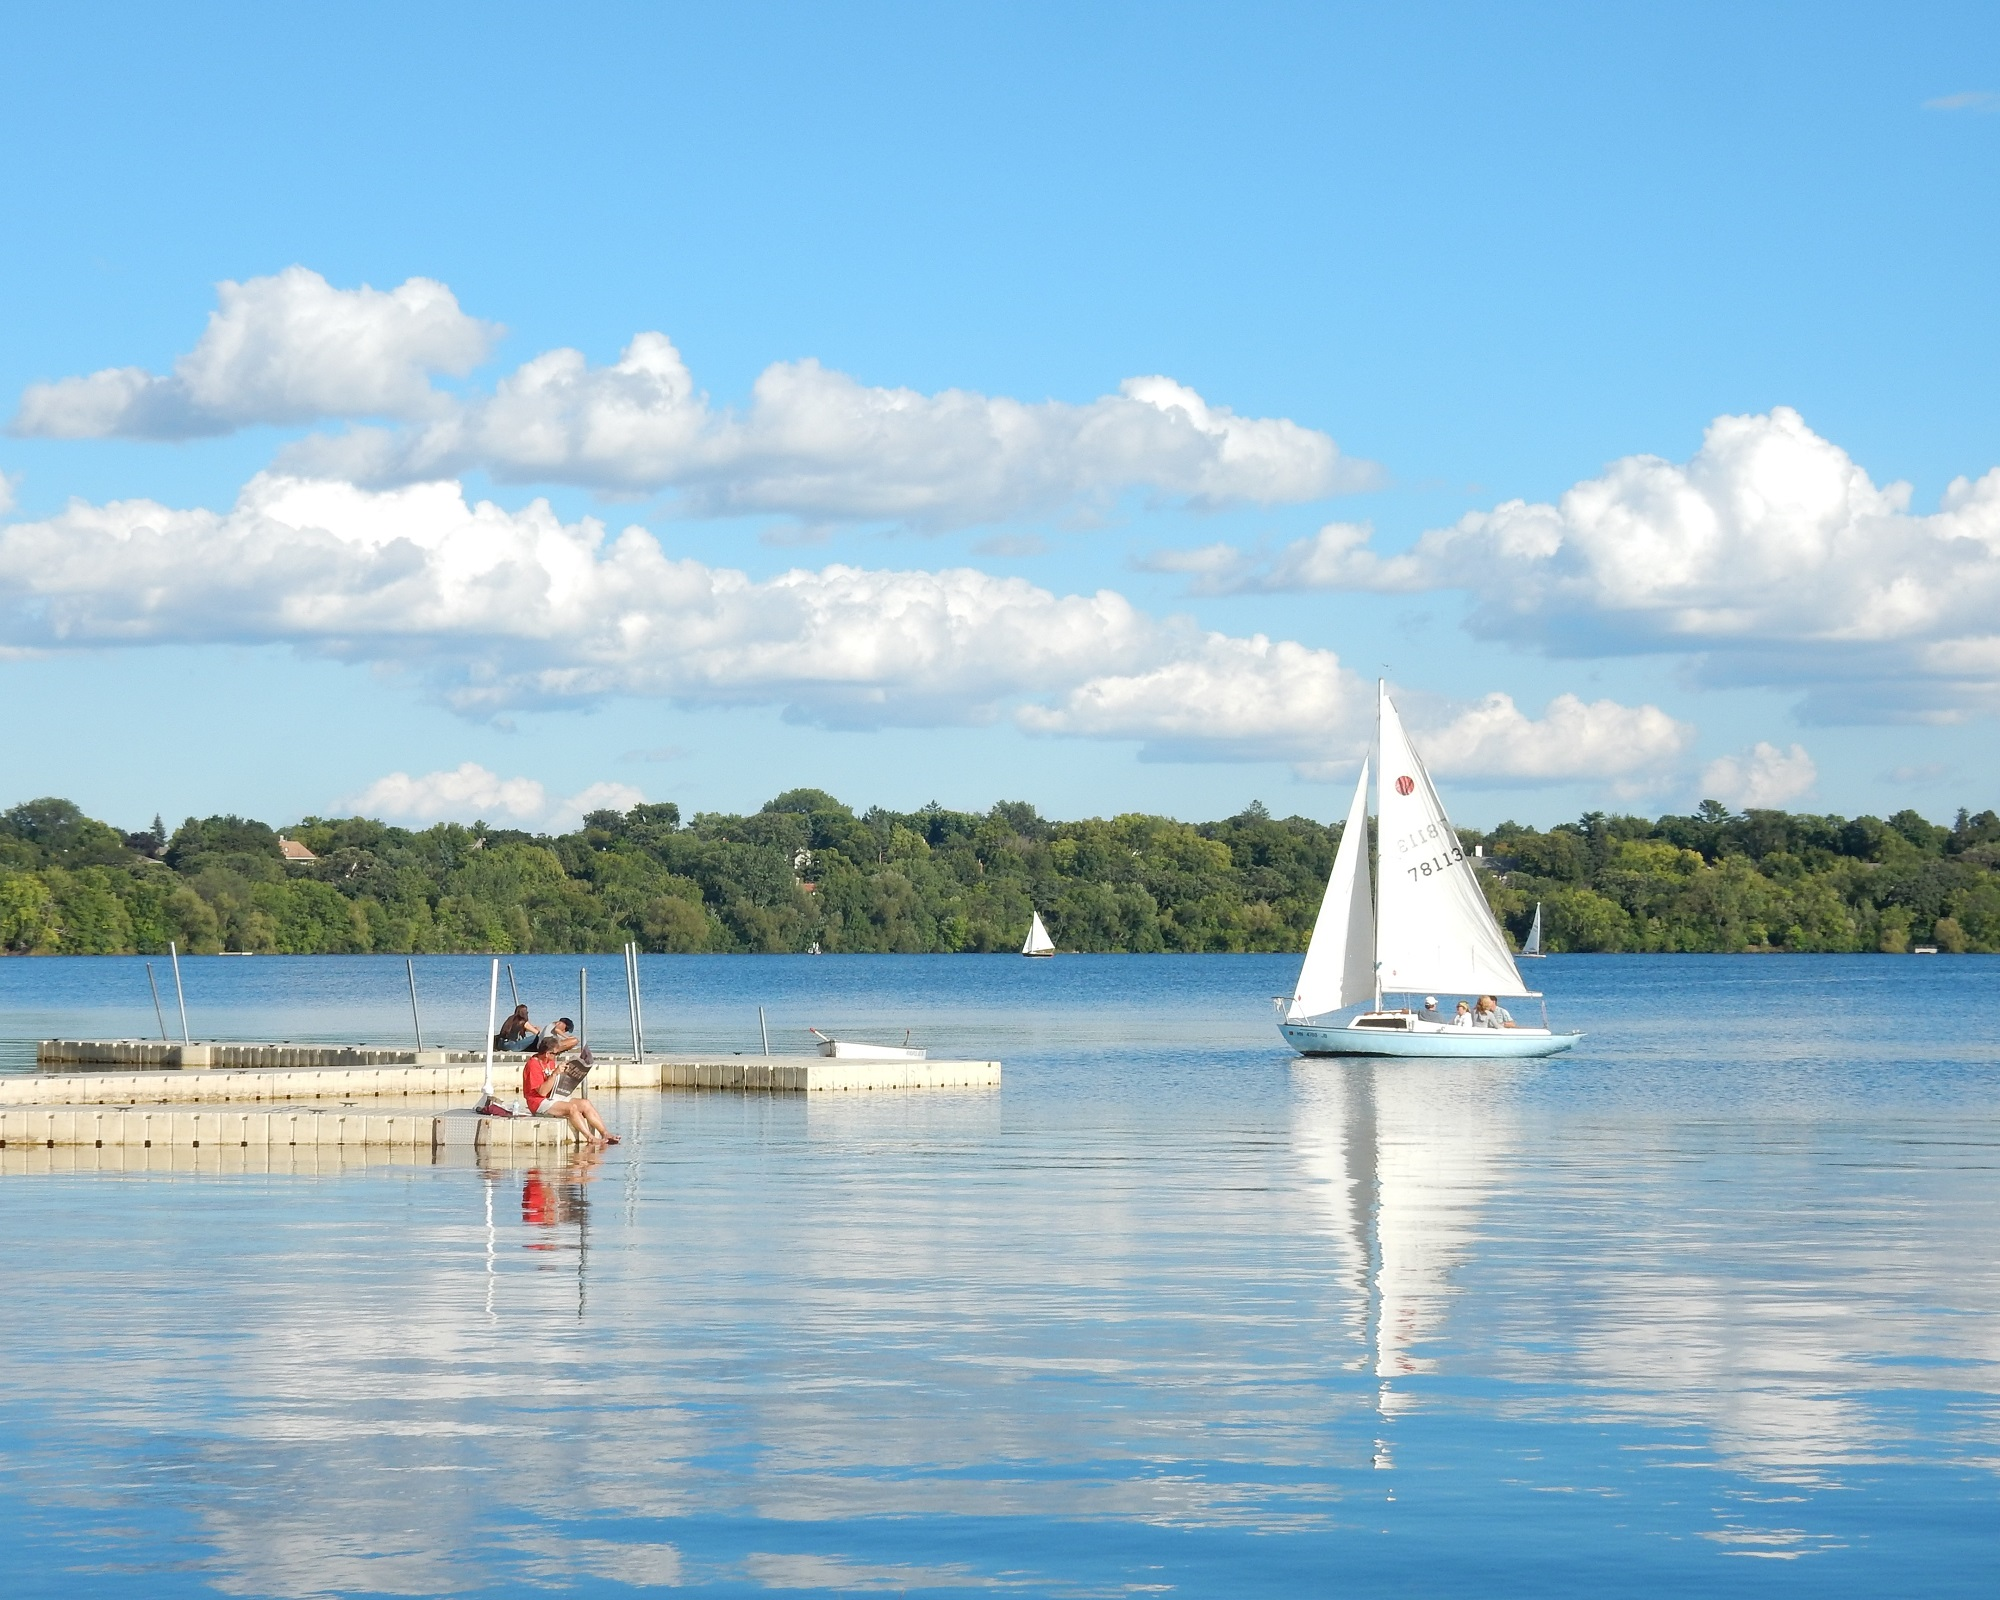 A sailboat and people on docks on Lake Harriet